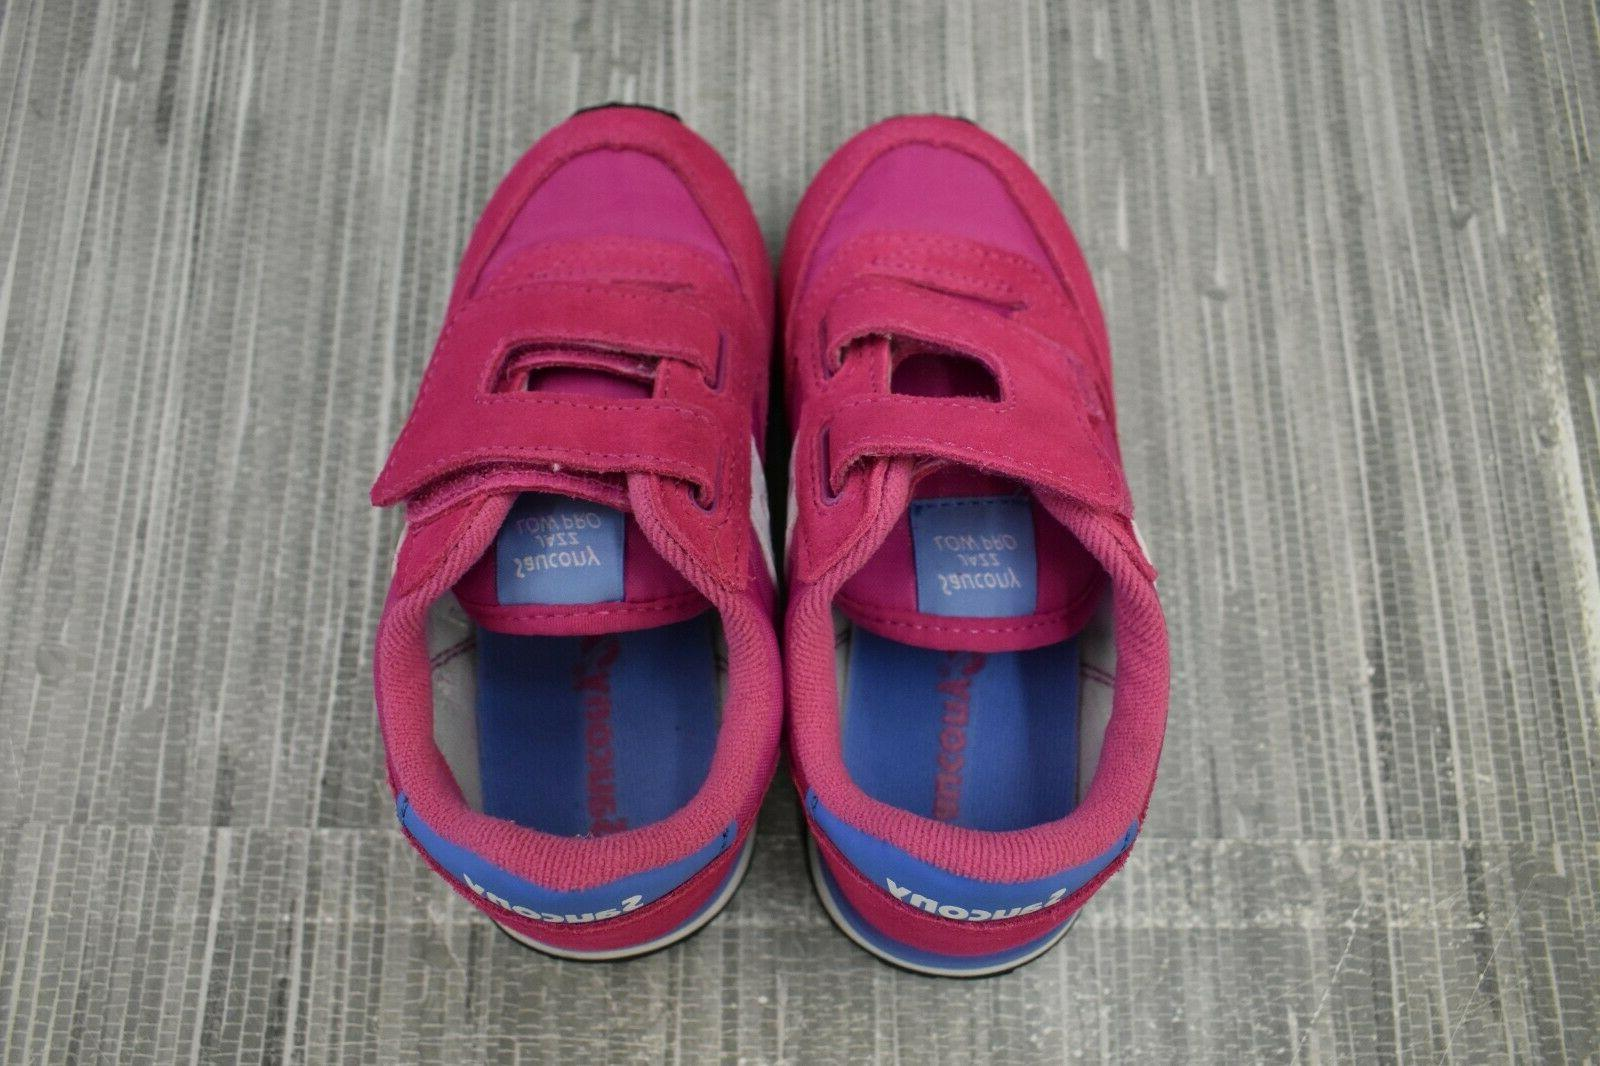 **Saucony Baby Sl159643 Shoes, Toddler Girl Pink NEW